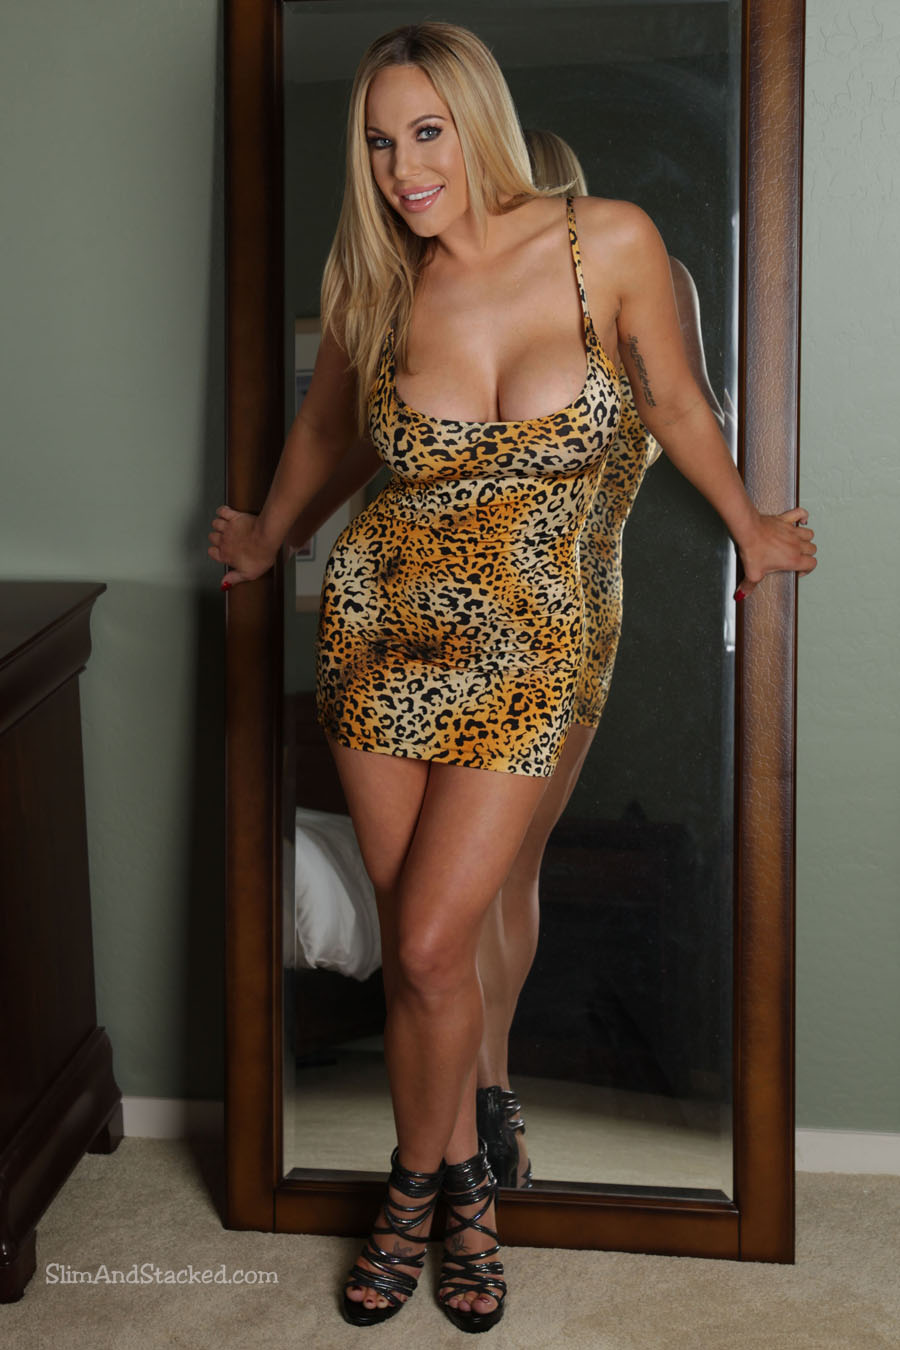 Sexy Olivia Austin is delightfully ferocious in an animal print mini-dress.  Don't you wish she'd attack you?  It's something to think about as she slowly teases that mini-dress off.  See for yourself by owning these incredible, ultra-high resolution images.  Contact dezertimagez@gmail.com for set pricing.